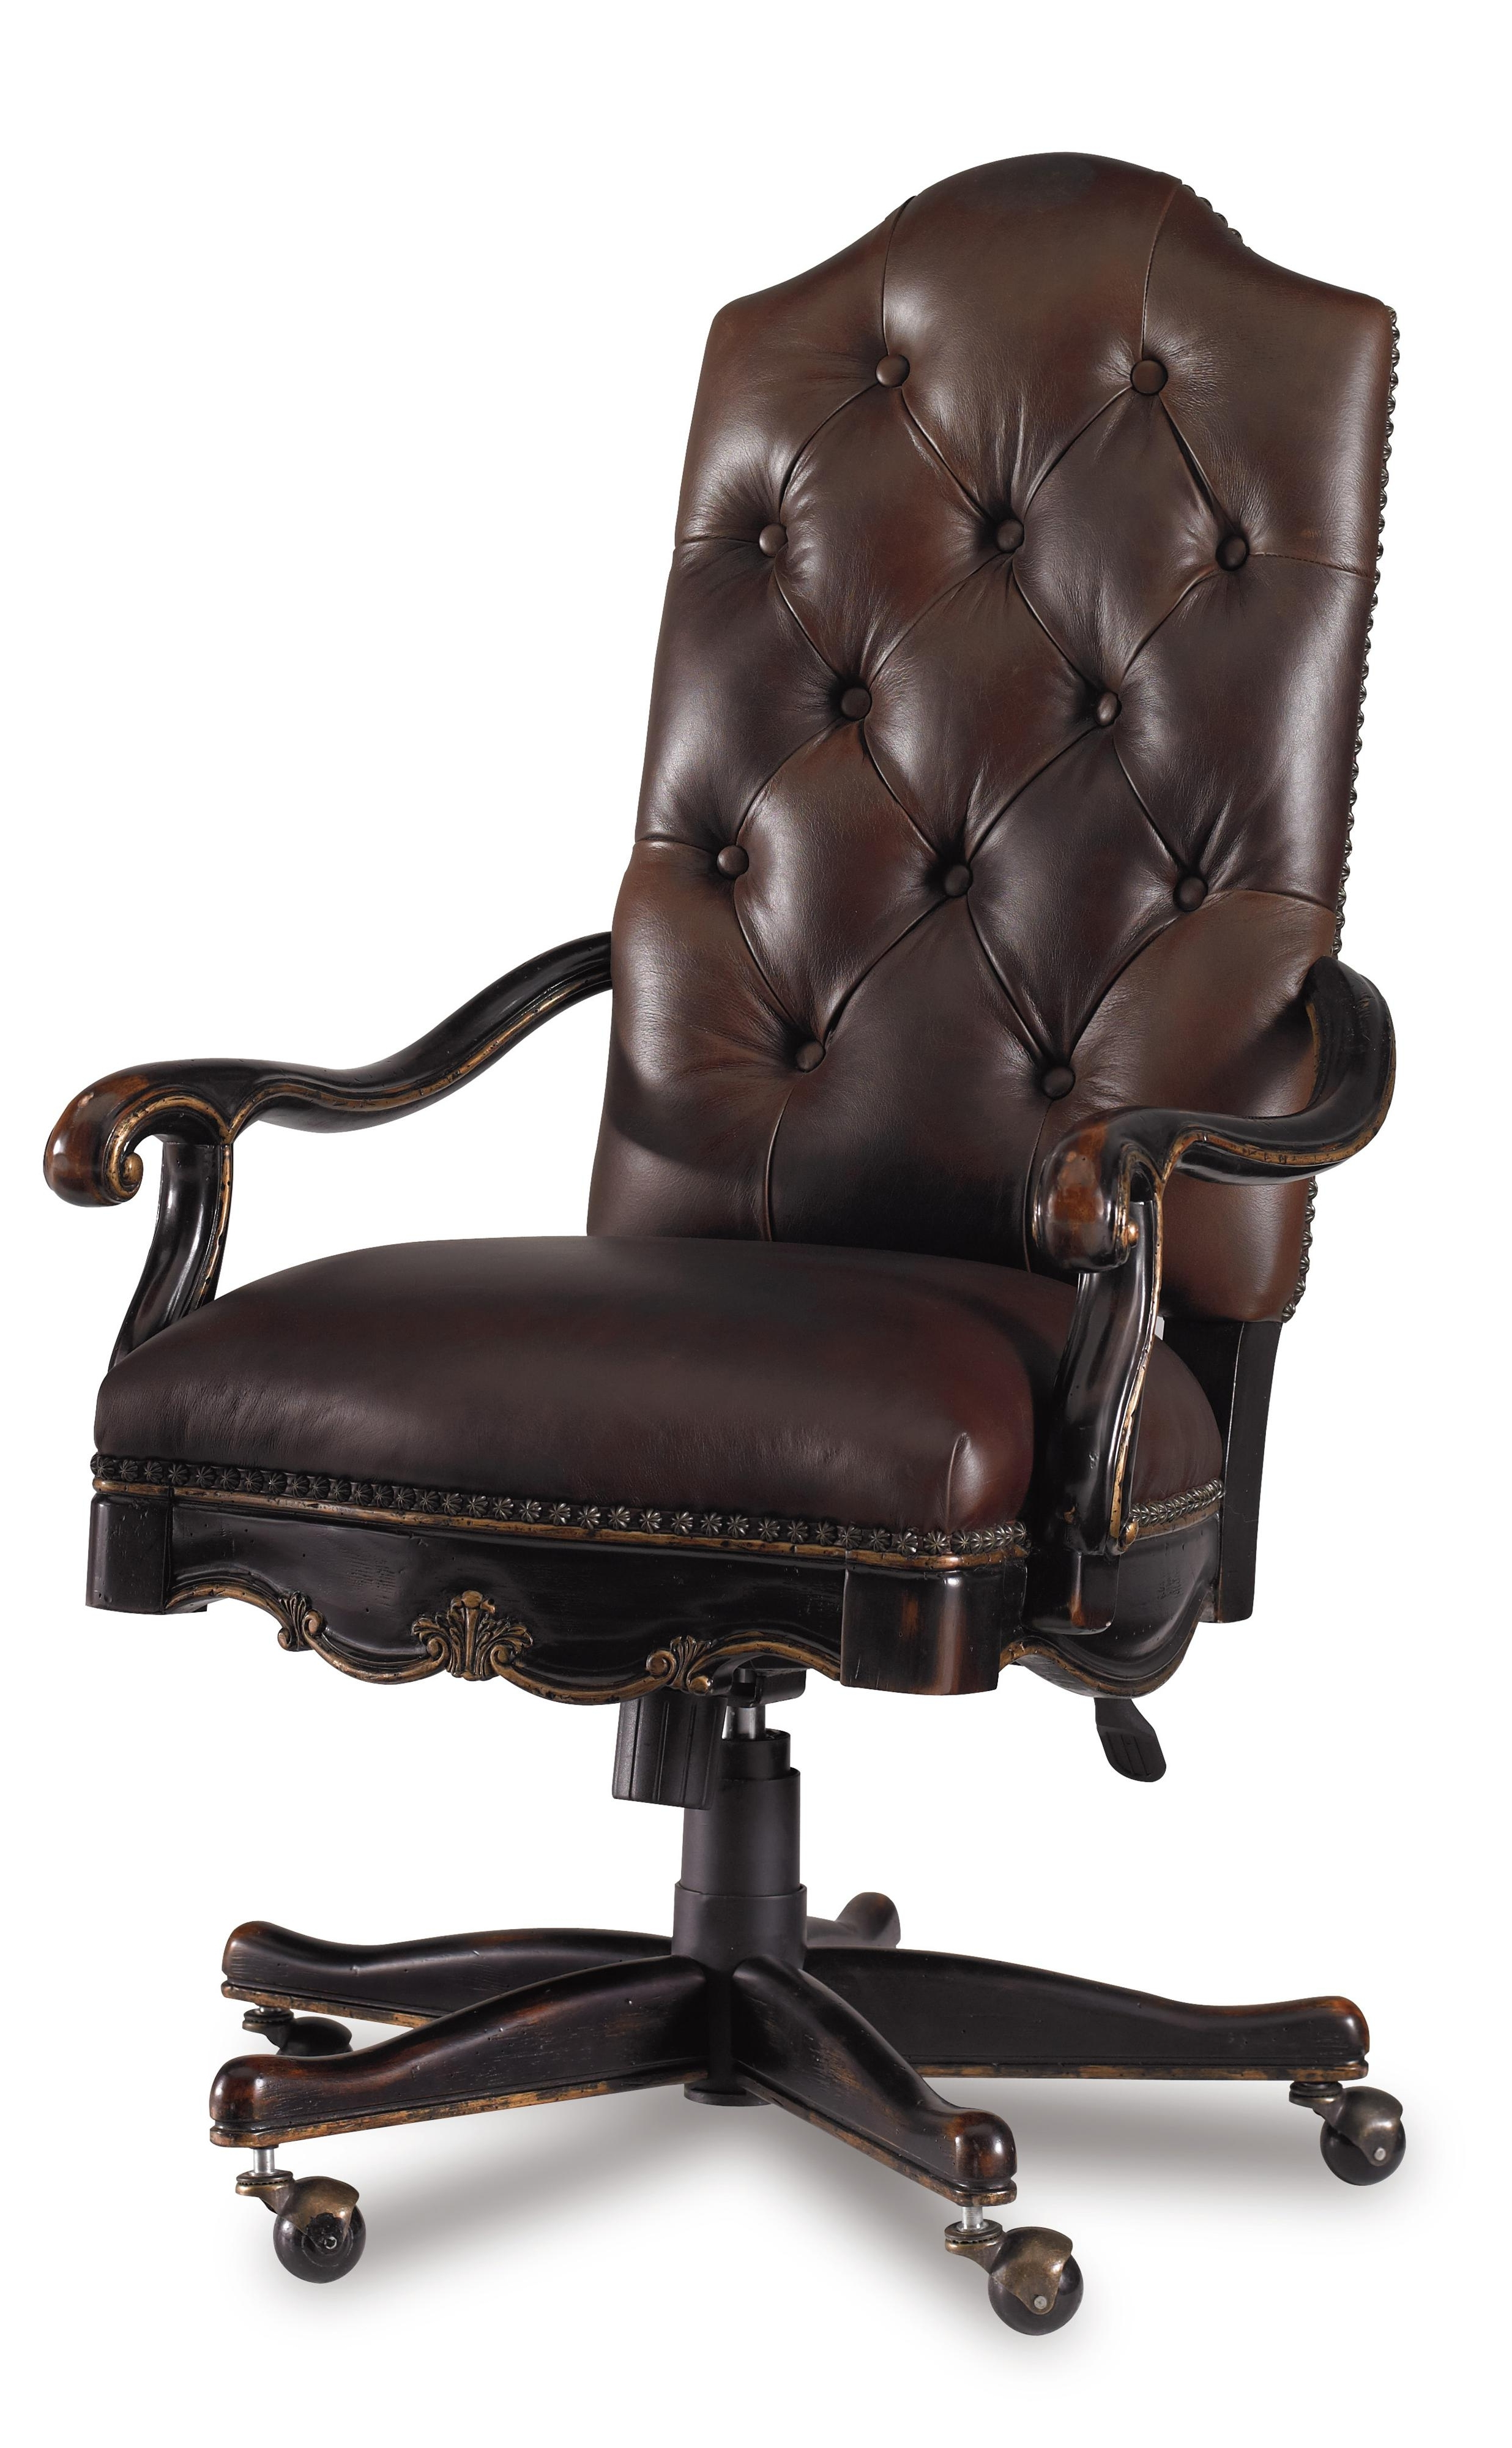 2019 Executive Office Chairs Without Arms Regarding Furniture : Leather Office Chairs Without Arms Office Chair Store (View 7 of 20)